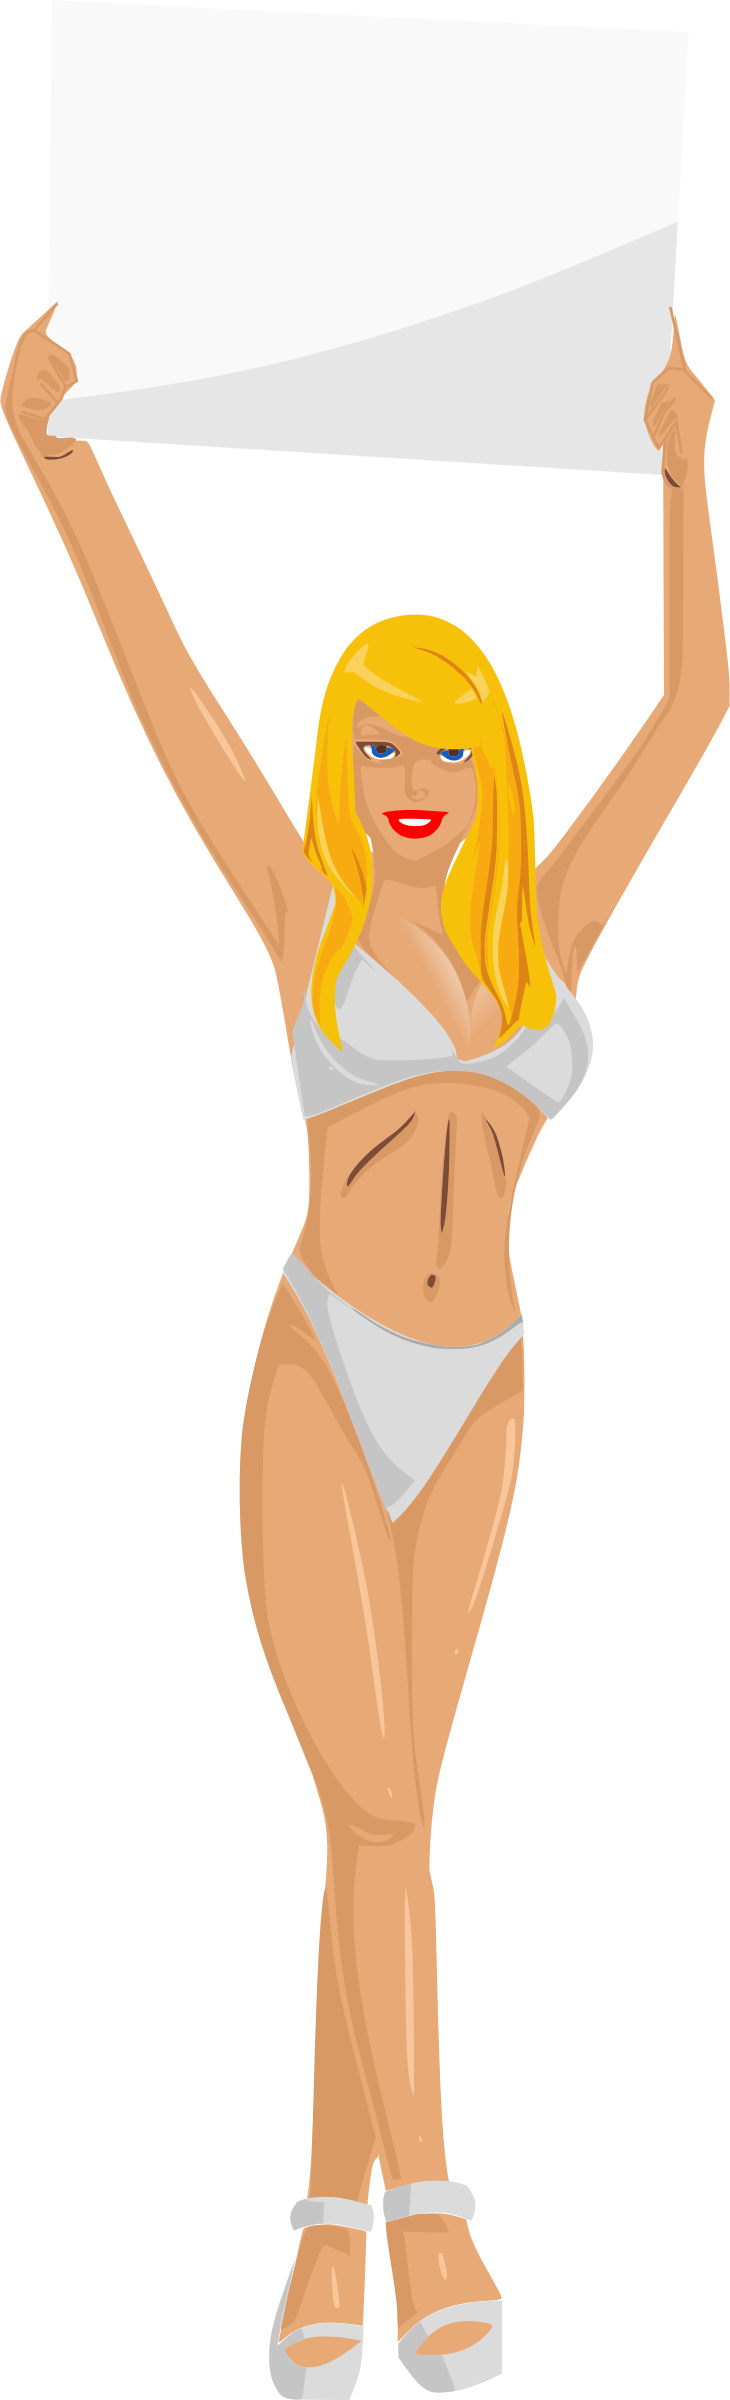 Girl with sign (white bikini, blonde hair, light skin) by Firkin